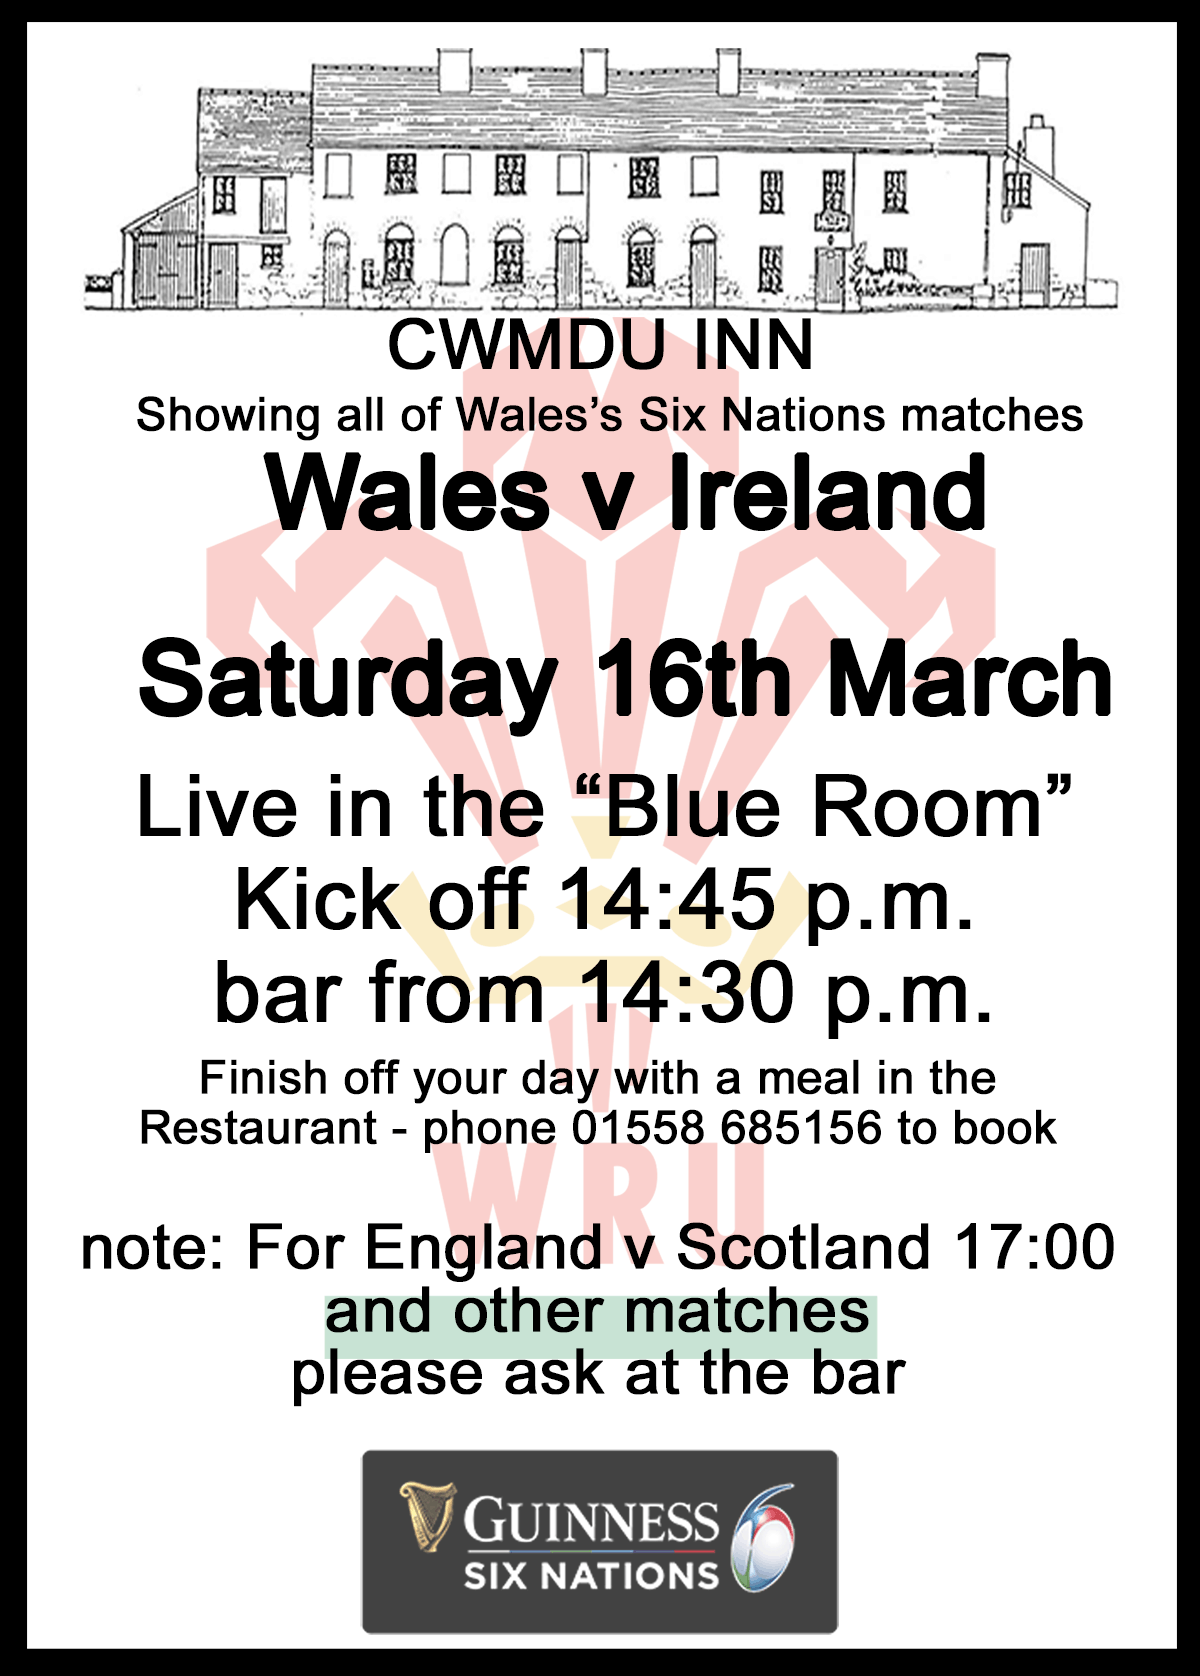 Wales v Ireland Guinness 6 Nations Rugby 16th March at the Cwmdu Inn, kick off 14:45 bar open